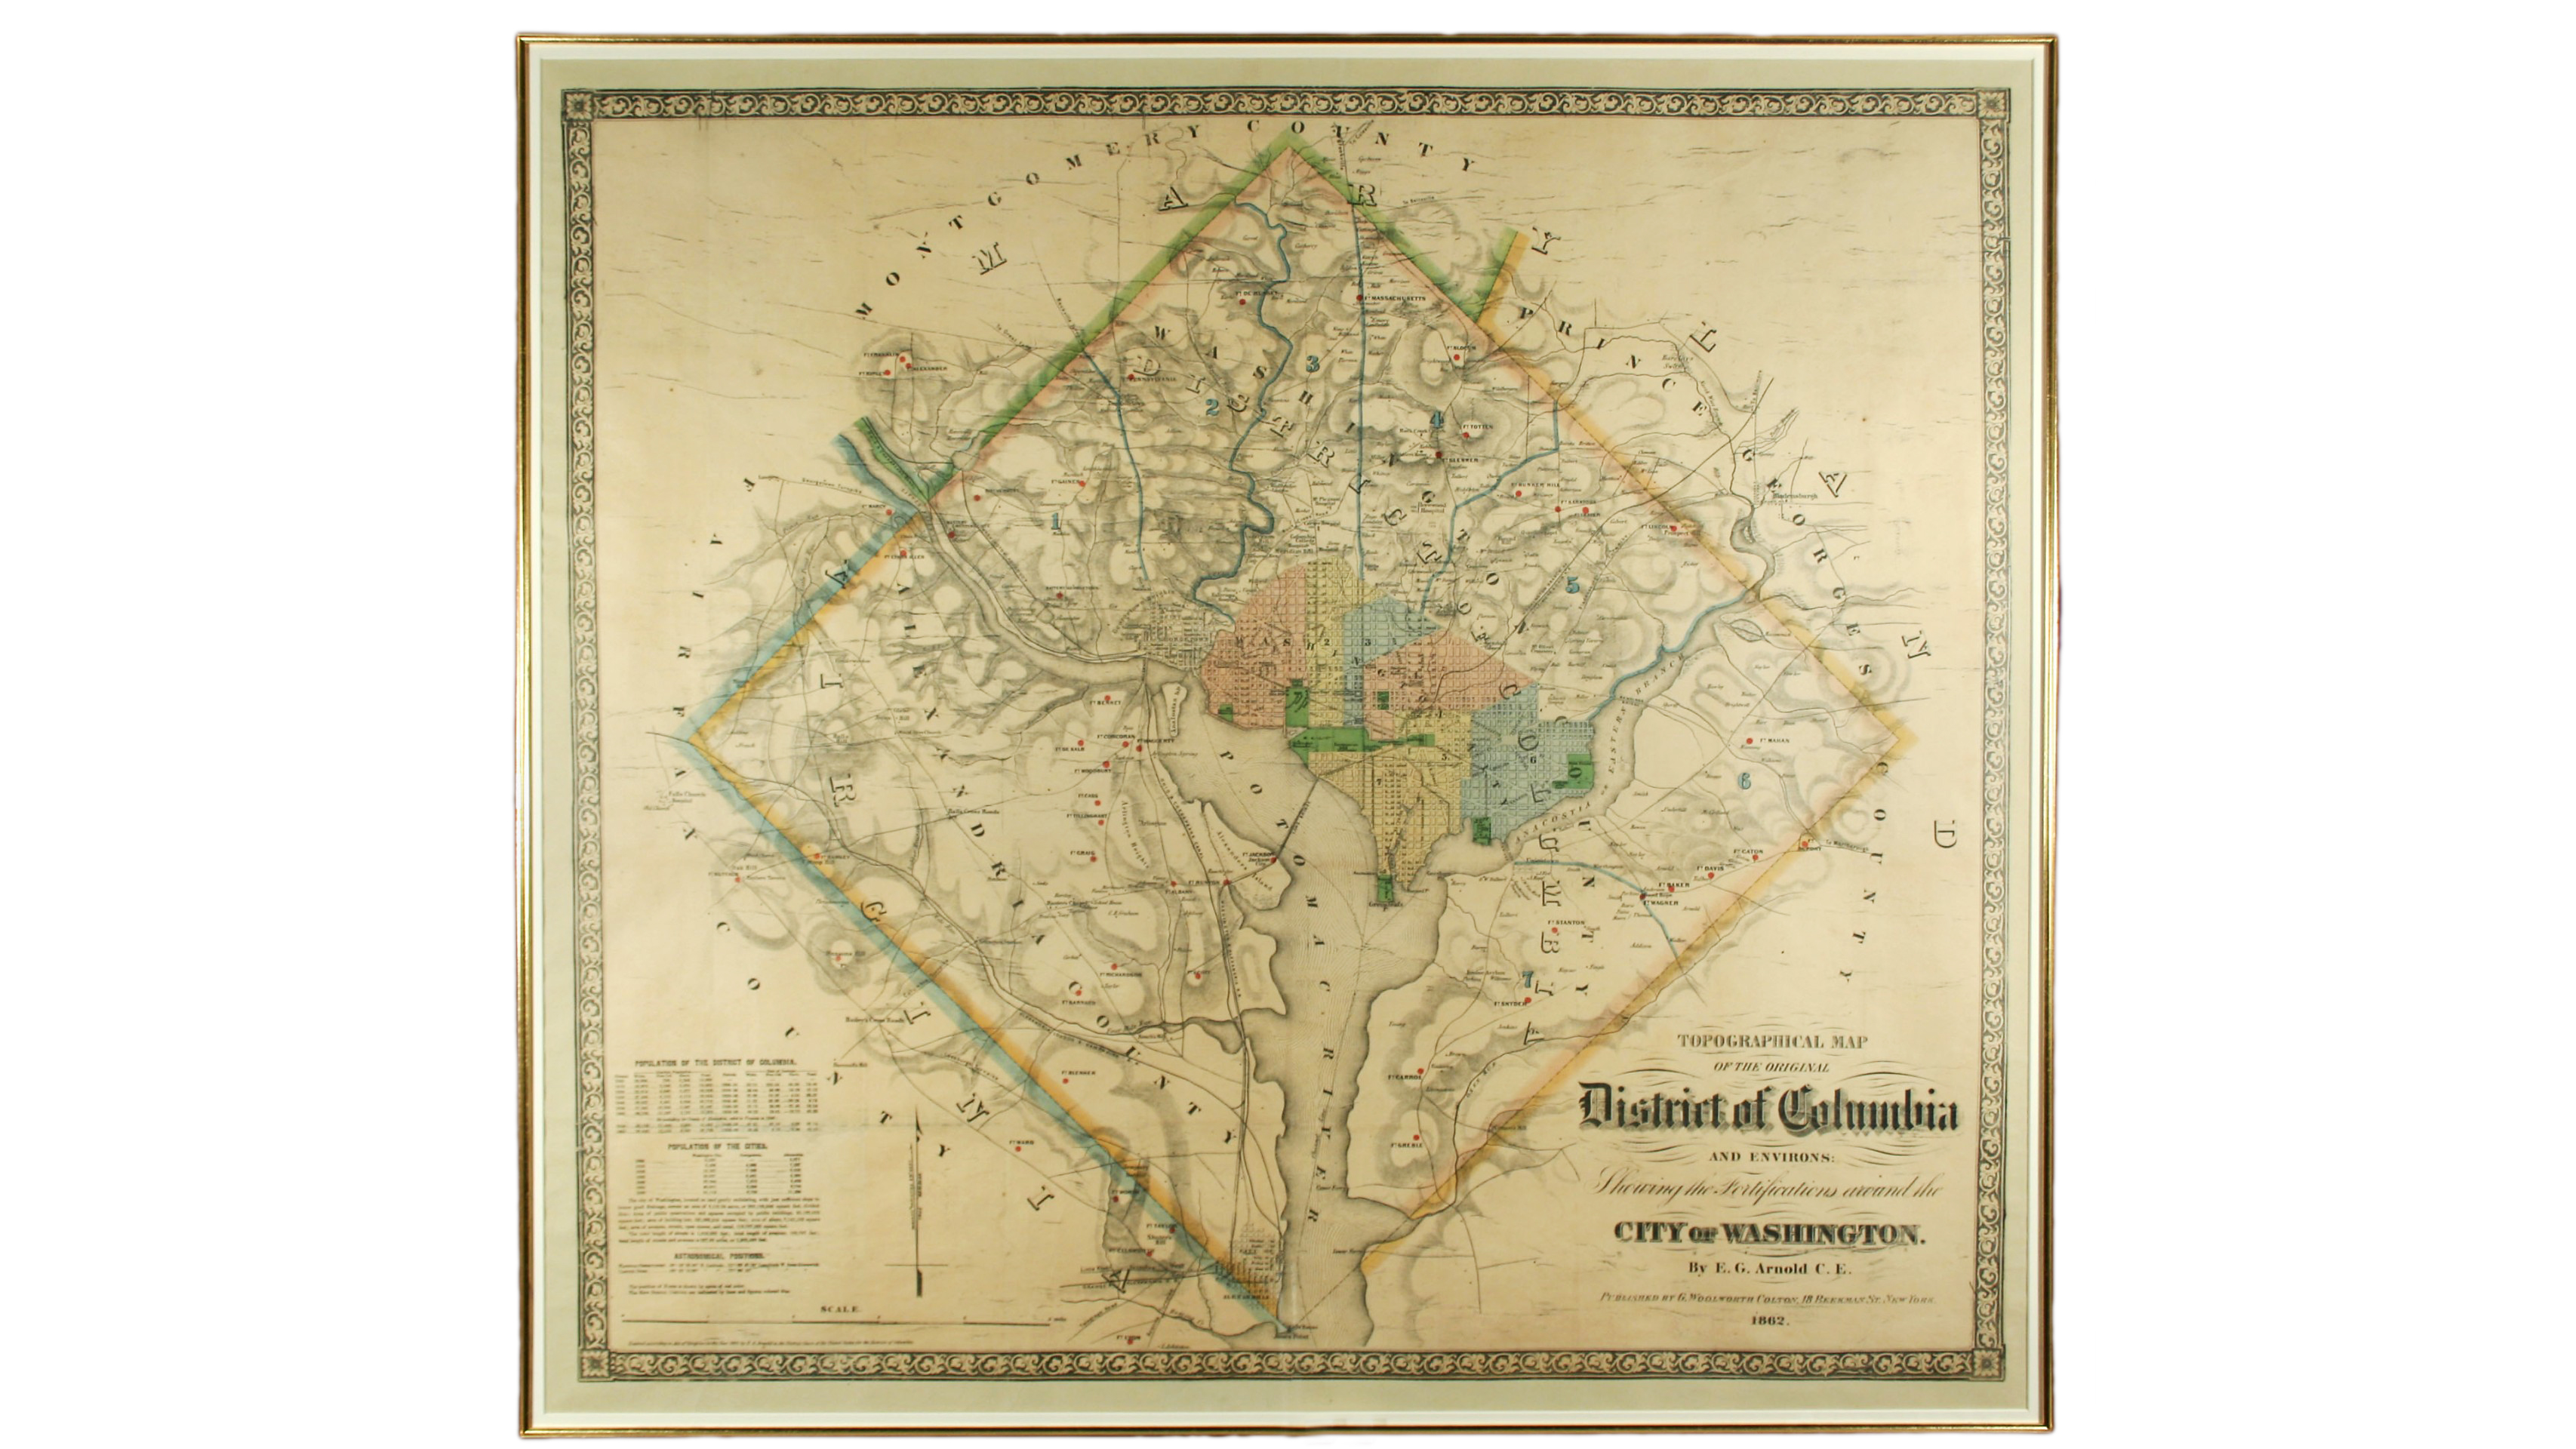 Topographical Map of the Original District of Columbia and Environs ...